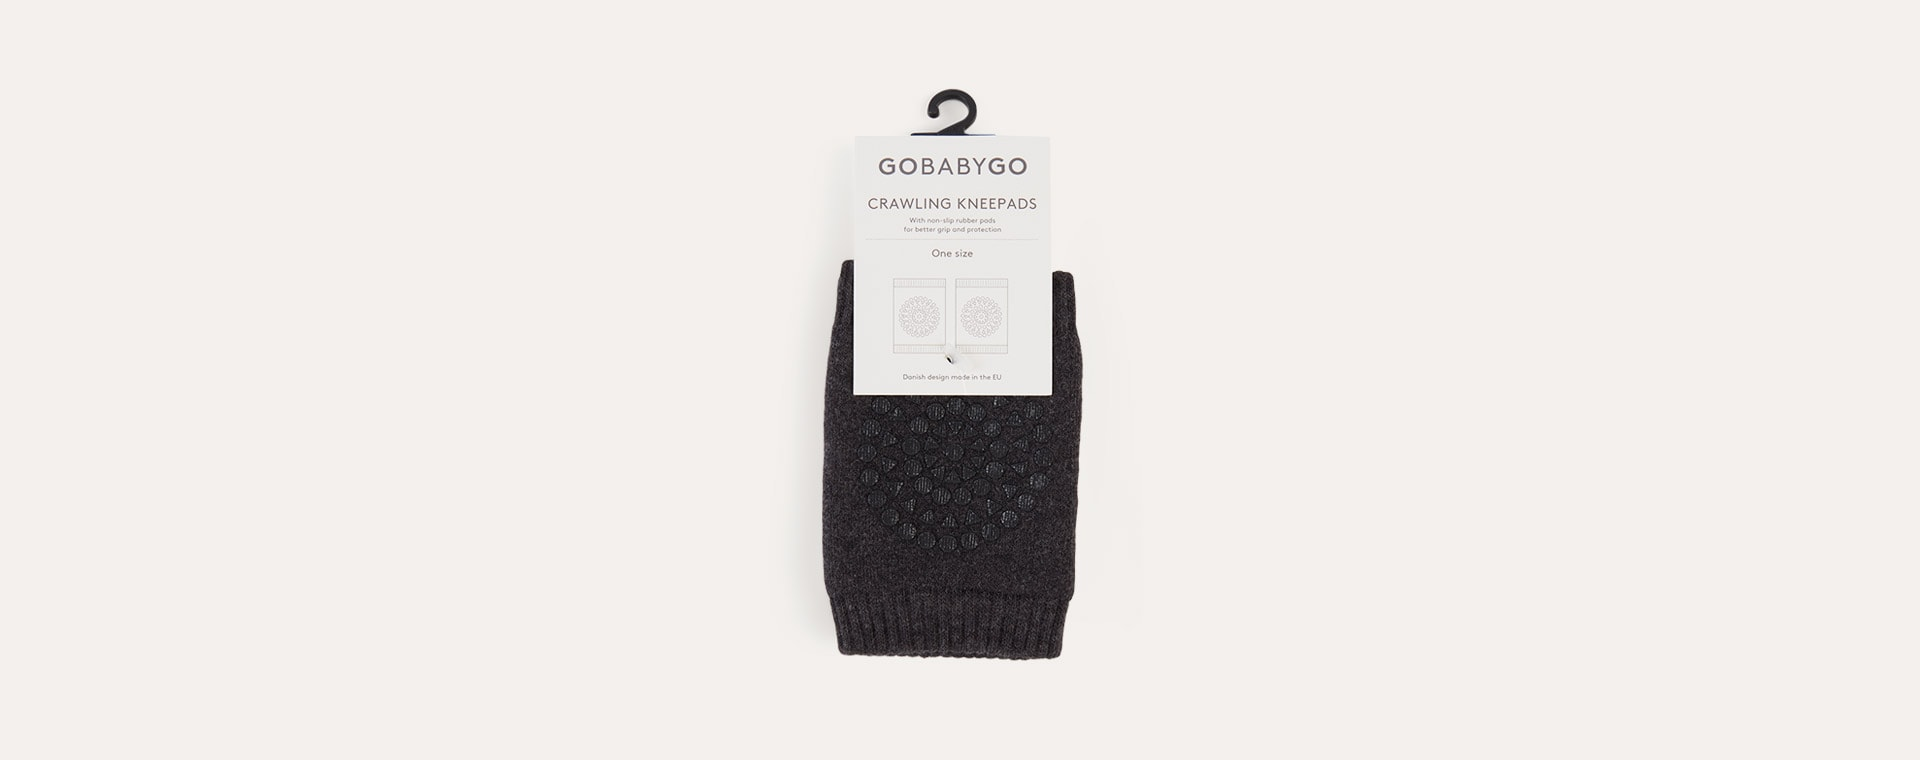 Charcoal Go Baby Go Crawling Knee Pads